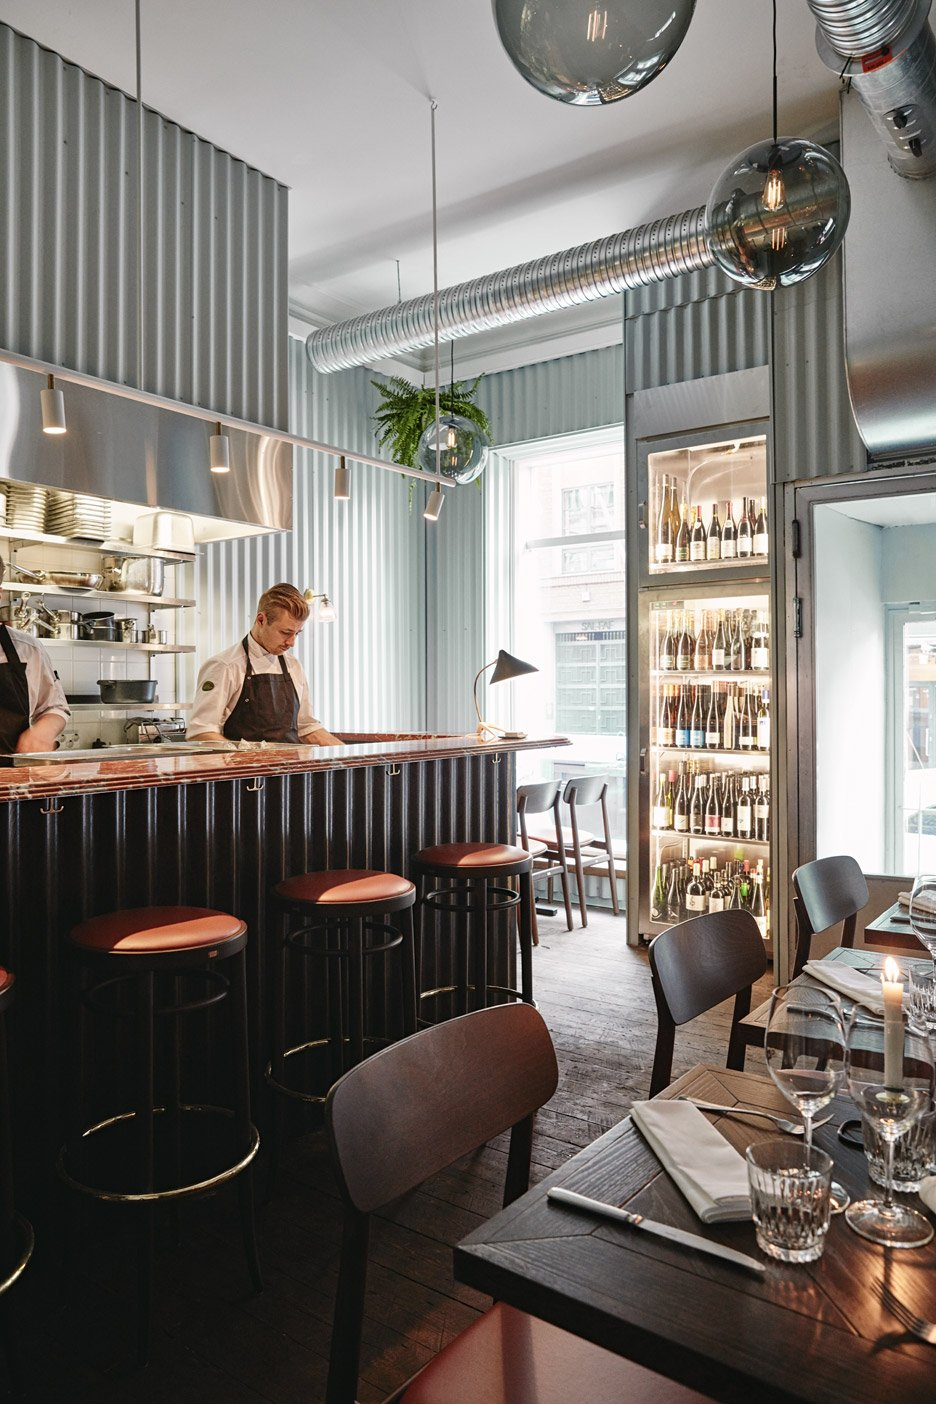 Joanna Laajisto lines Helsinki restaurant walls with corrugated metal